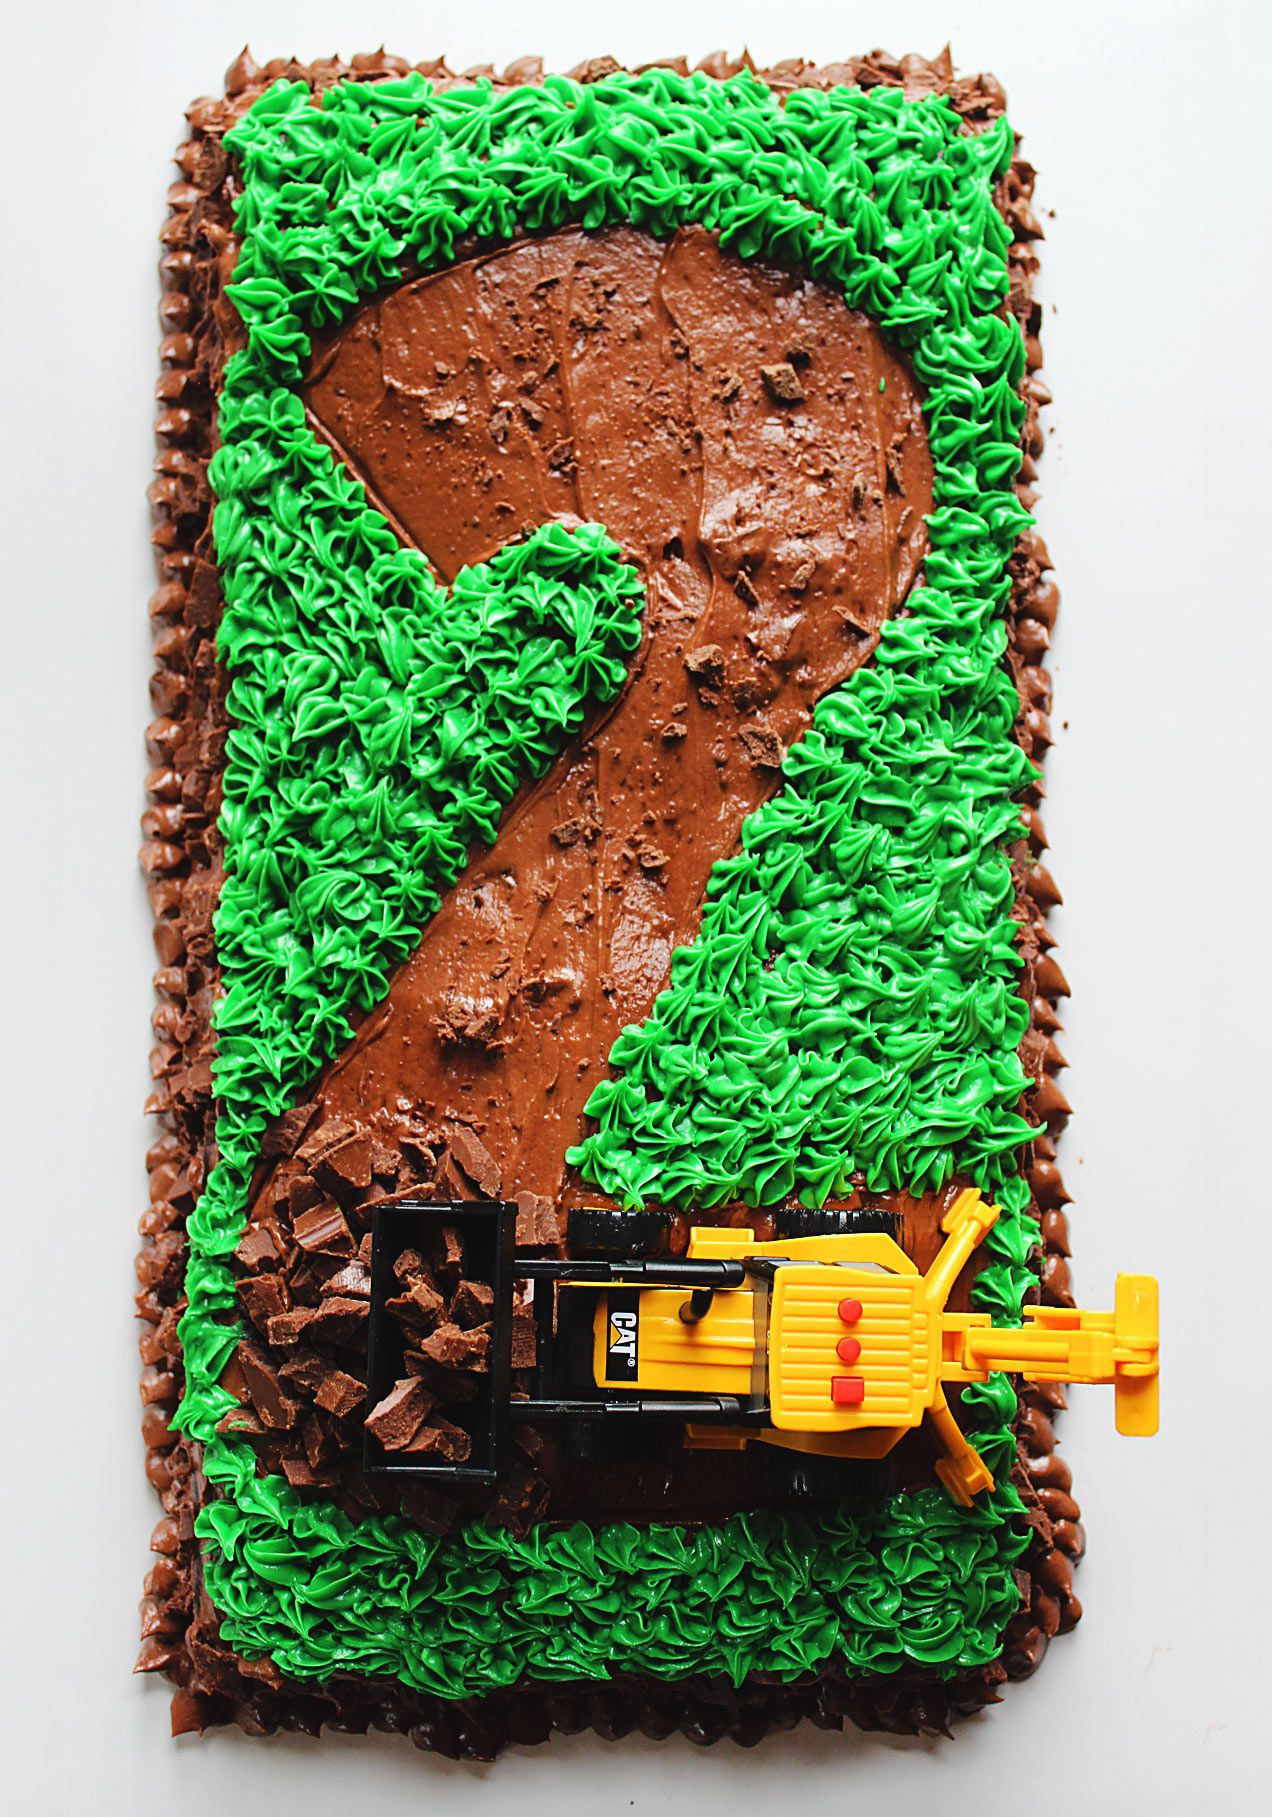 Tractor Birthday Cakes On Pinterest Tractor Cakes John